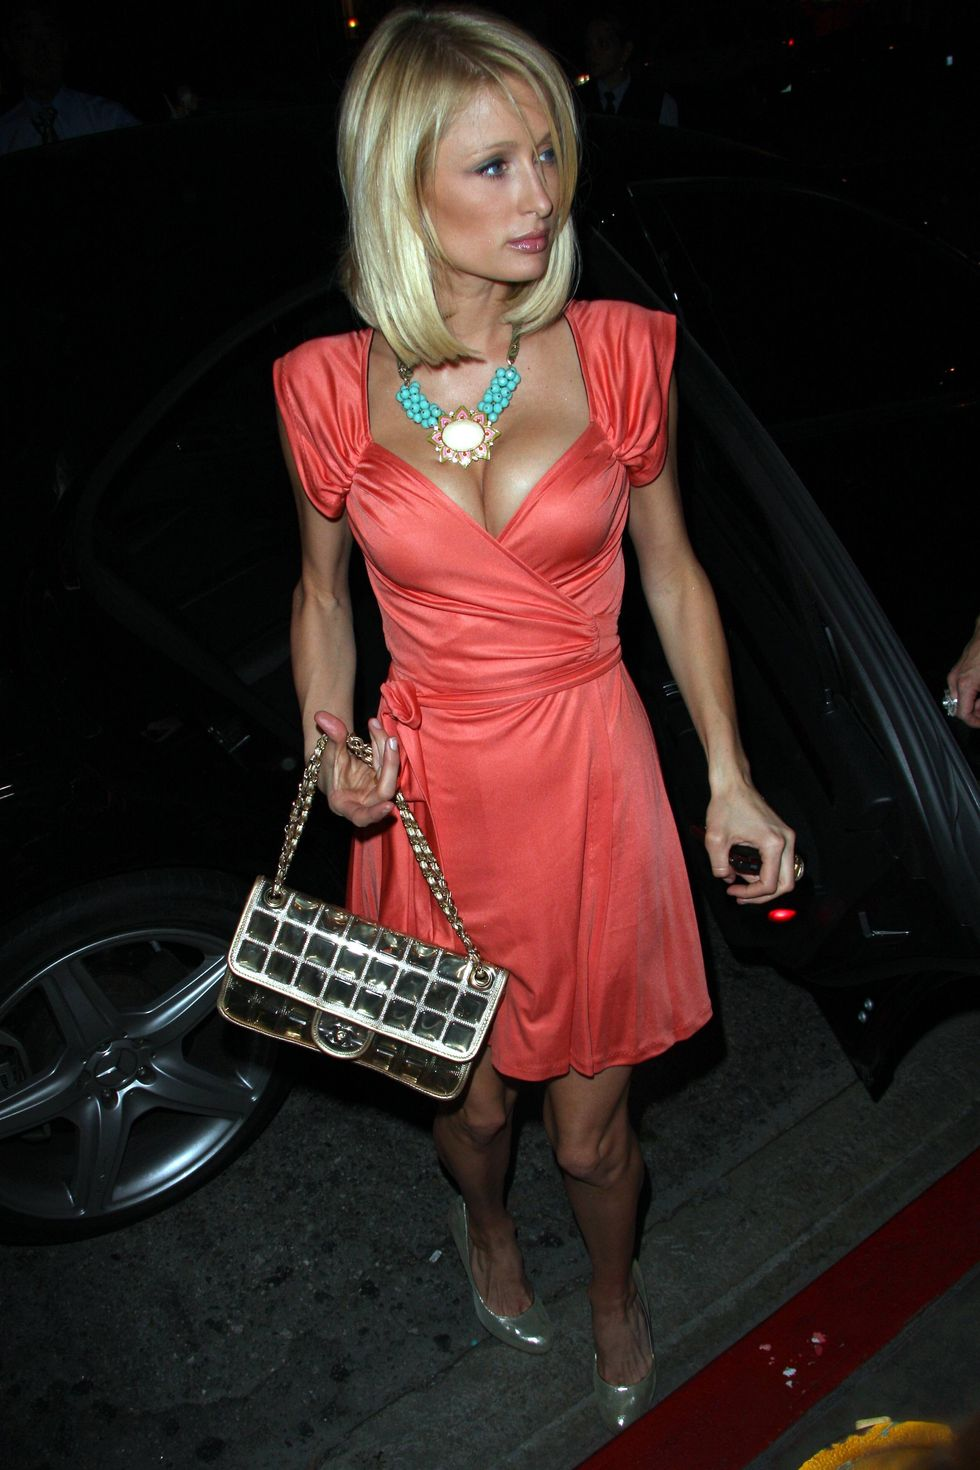 paris-hilton-cleavage-candids-at-club-villa-in-hollywood-01